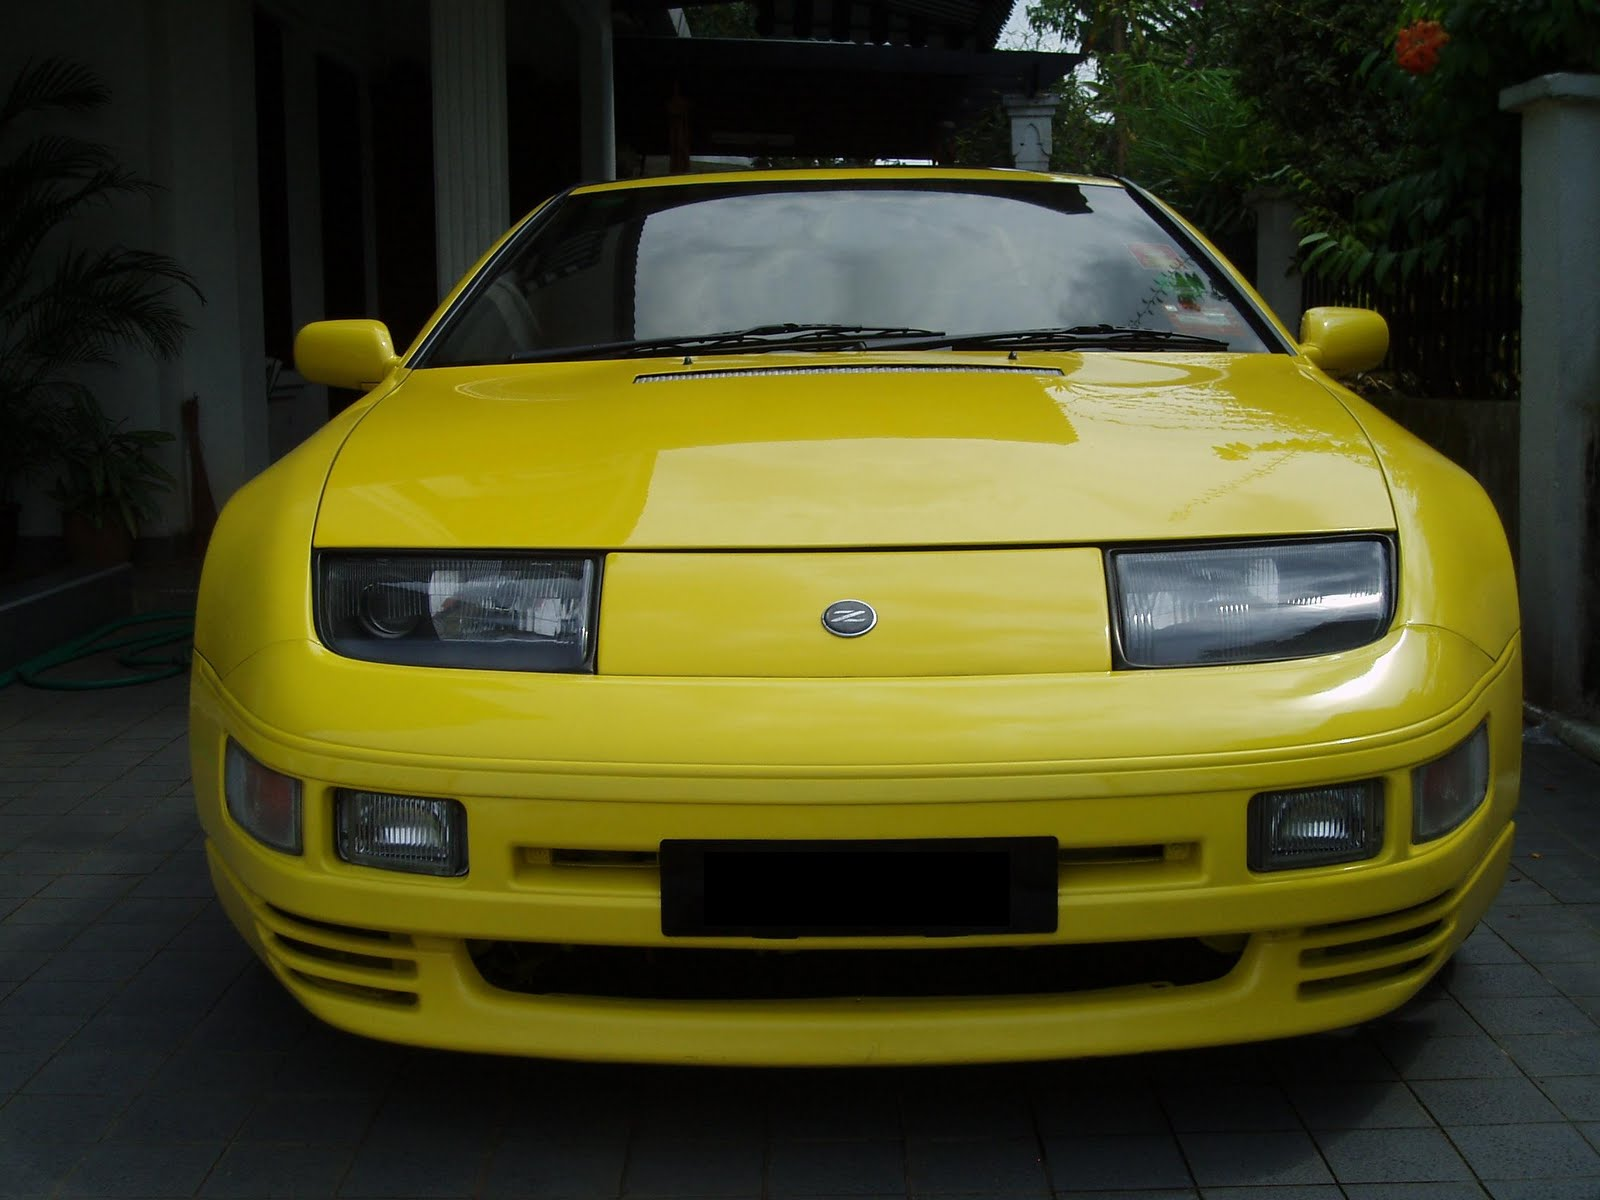 nissan fairlady z yellow wallpapers - Nissan Fairlady Z Yellow Car Wallpapers Full HD